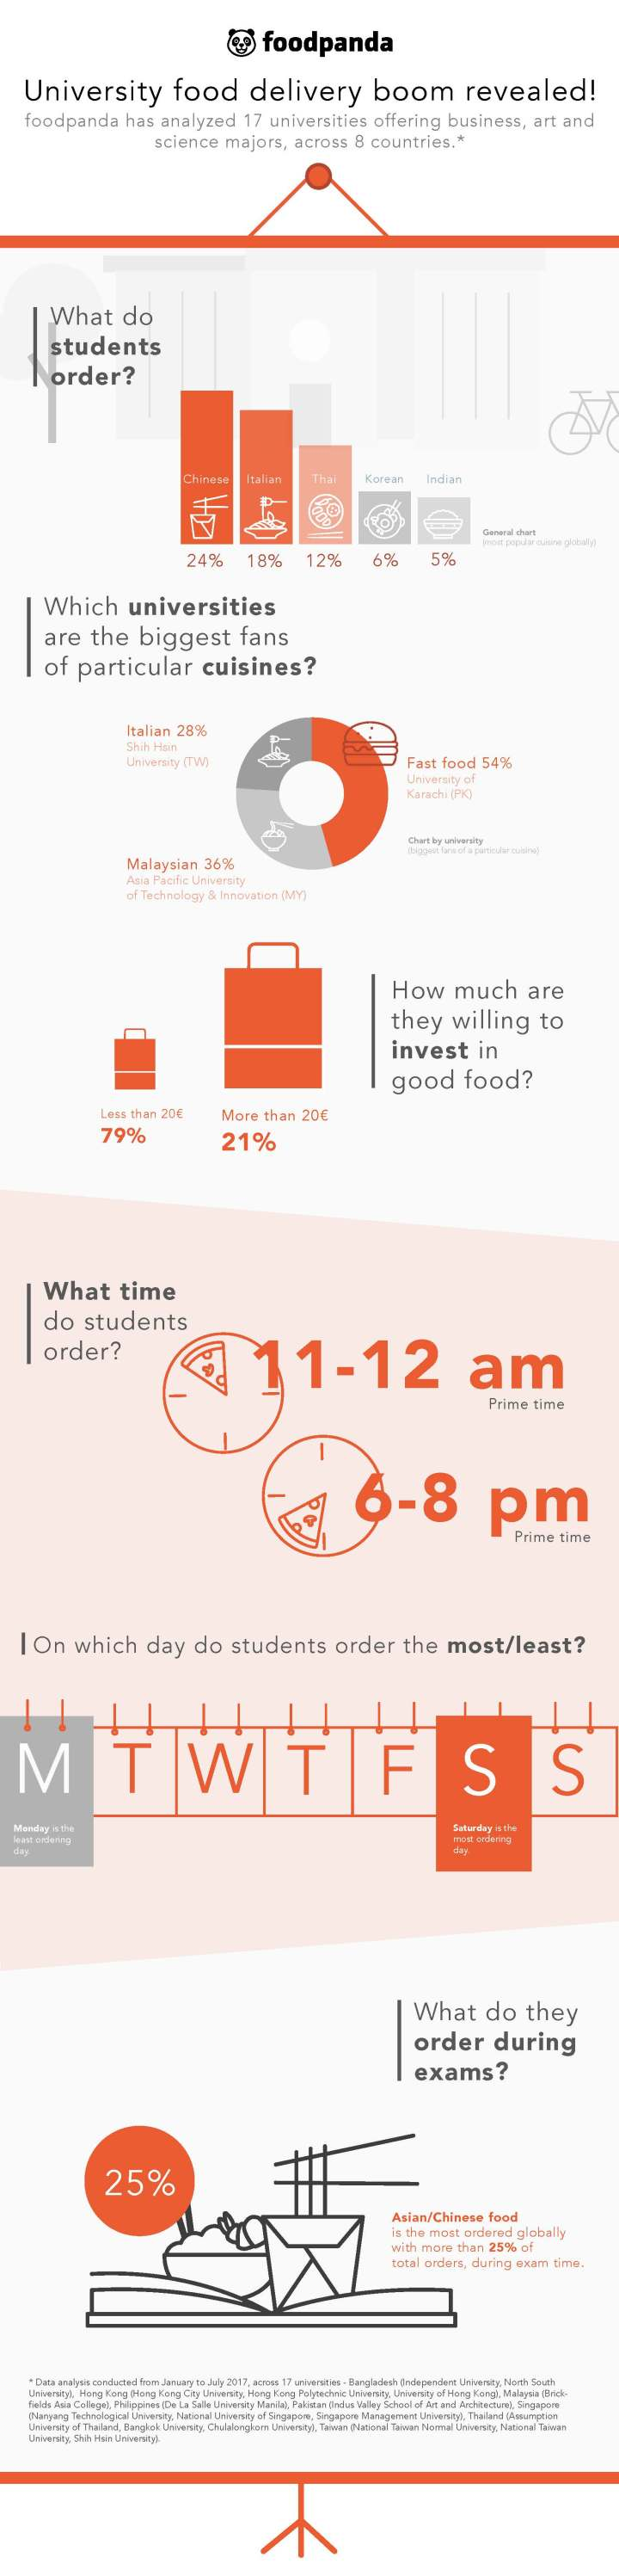 foodpanda University Delivery Boom - infographic